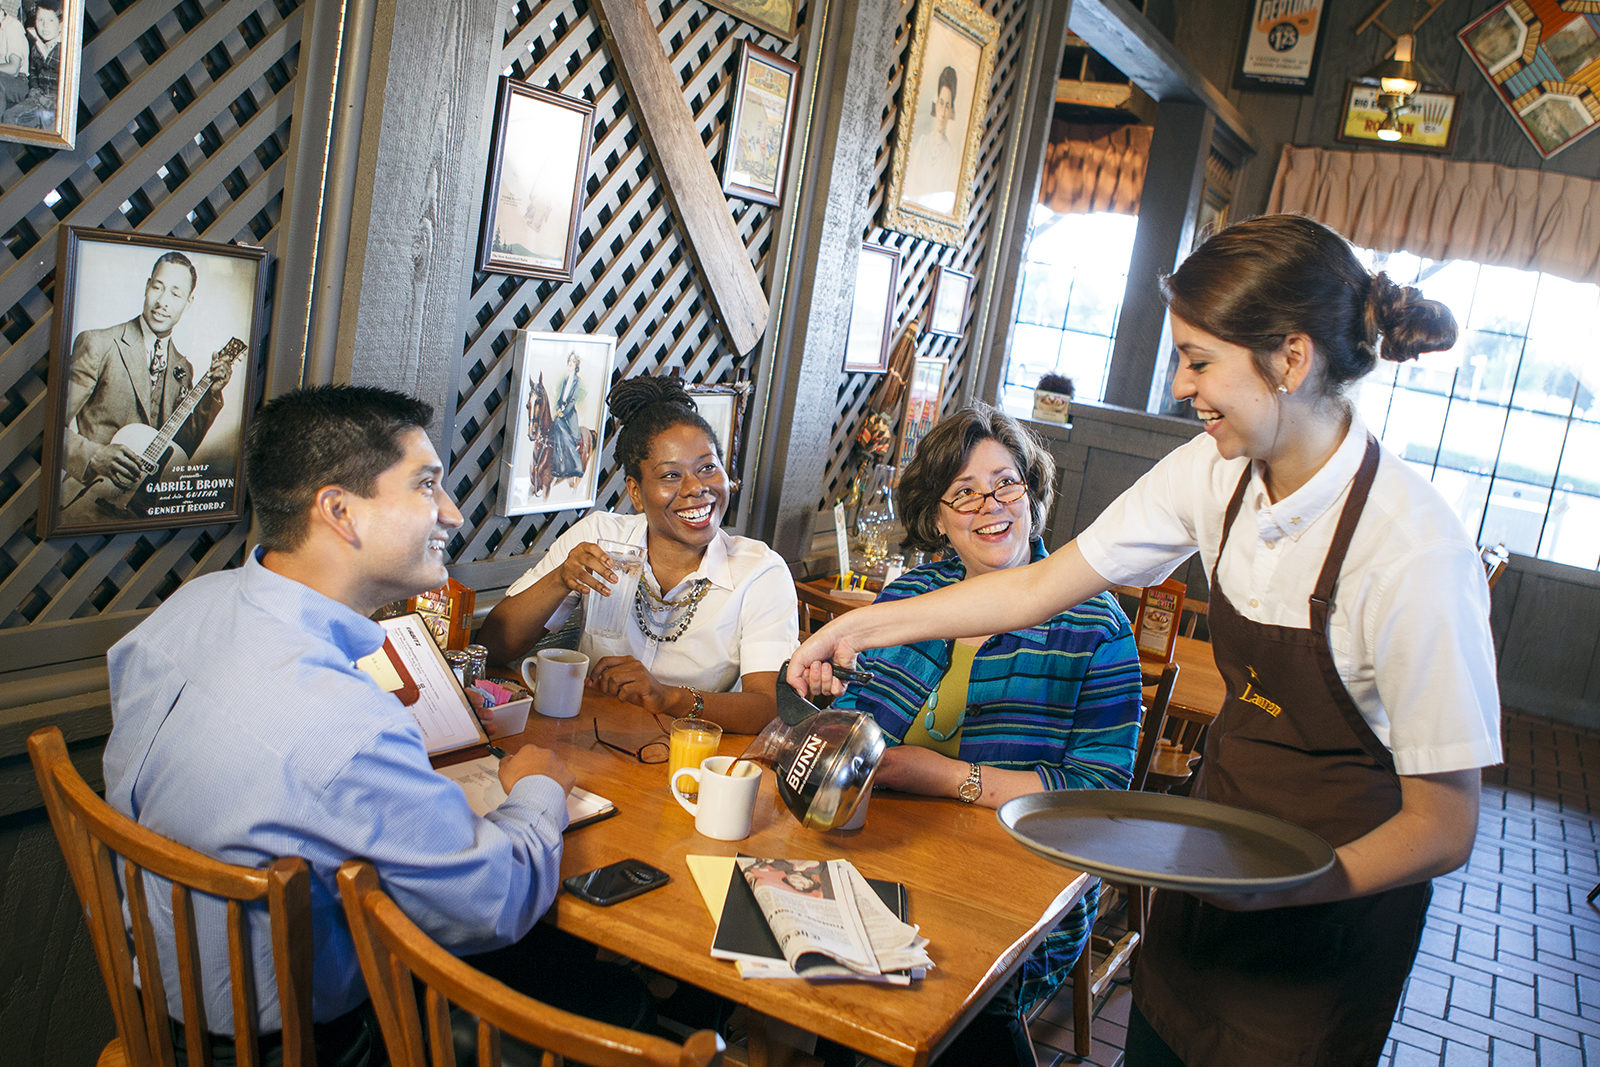 Family Dining Restaurant Chains